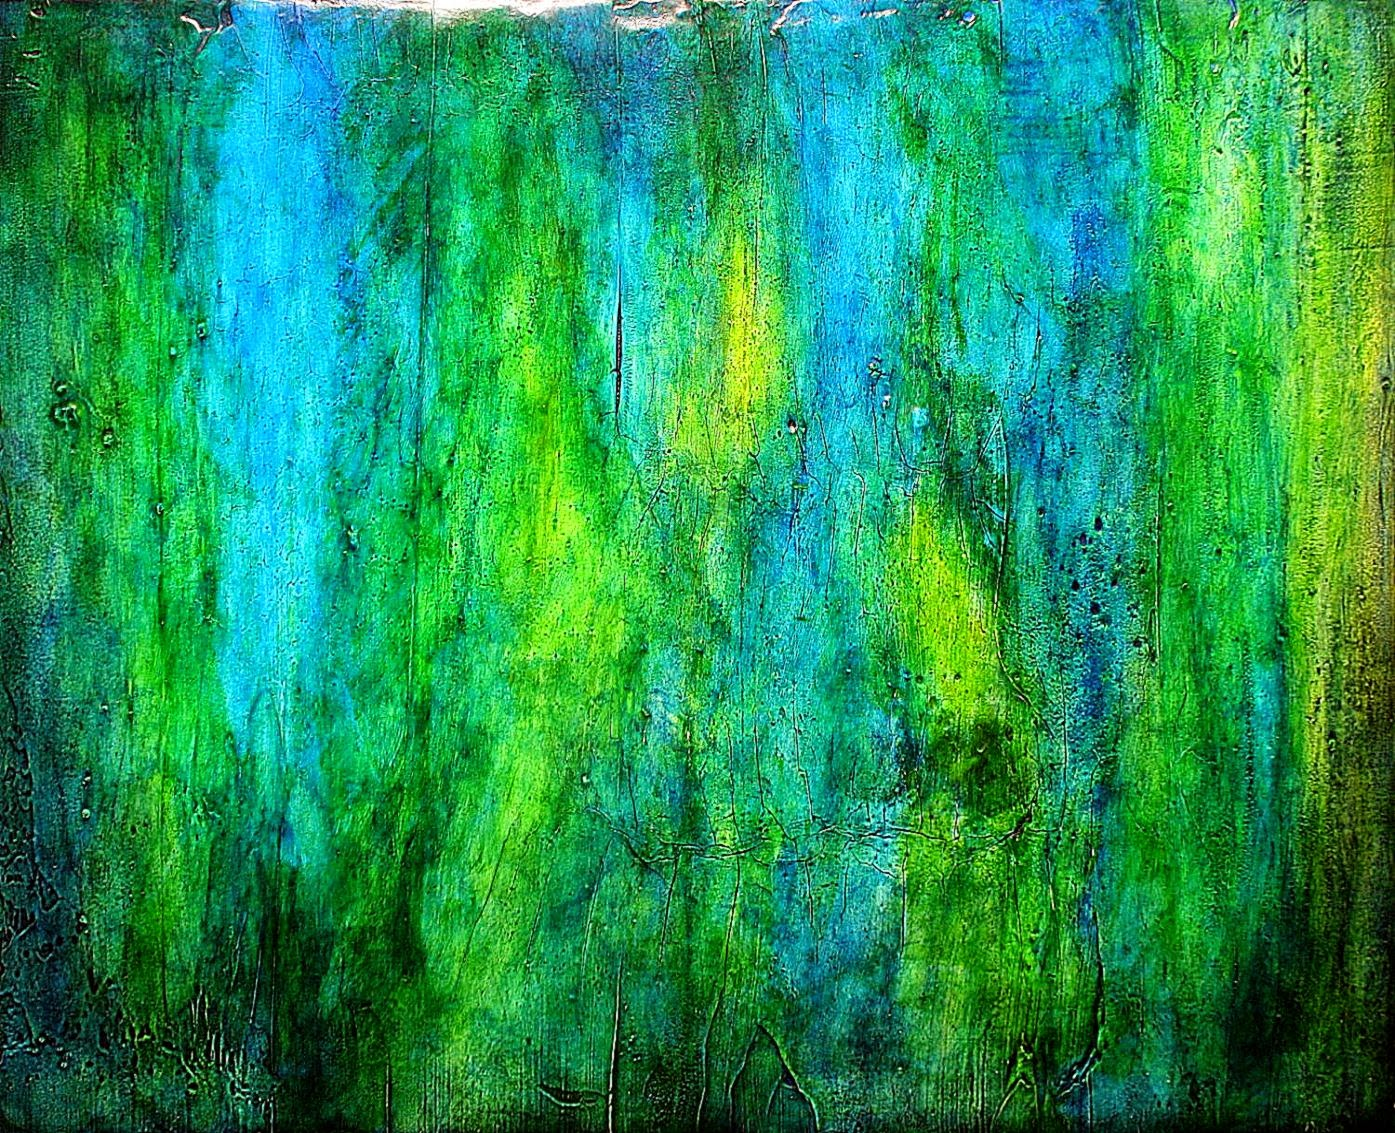 Abstract Painting Blue Green Element by mmedley on Etsy